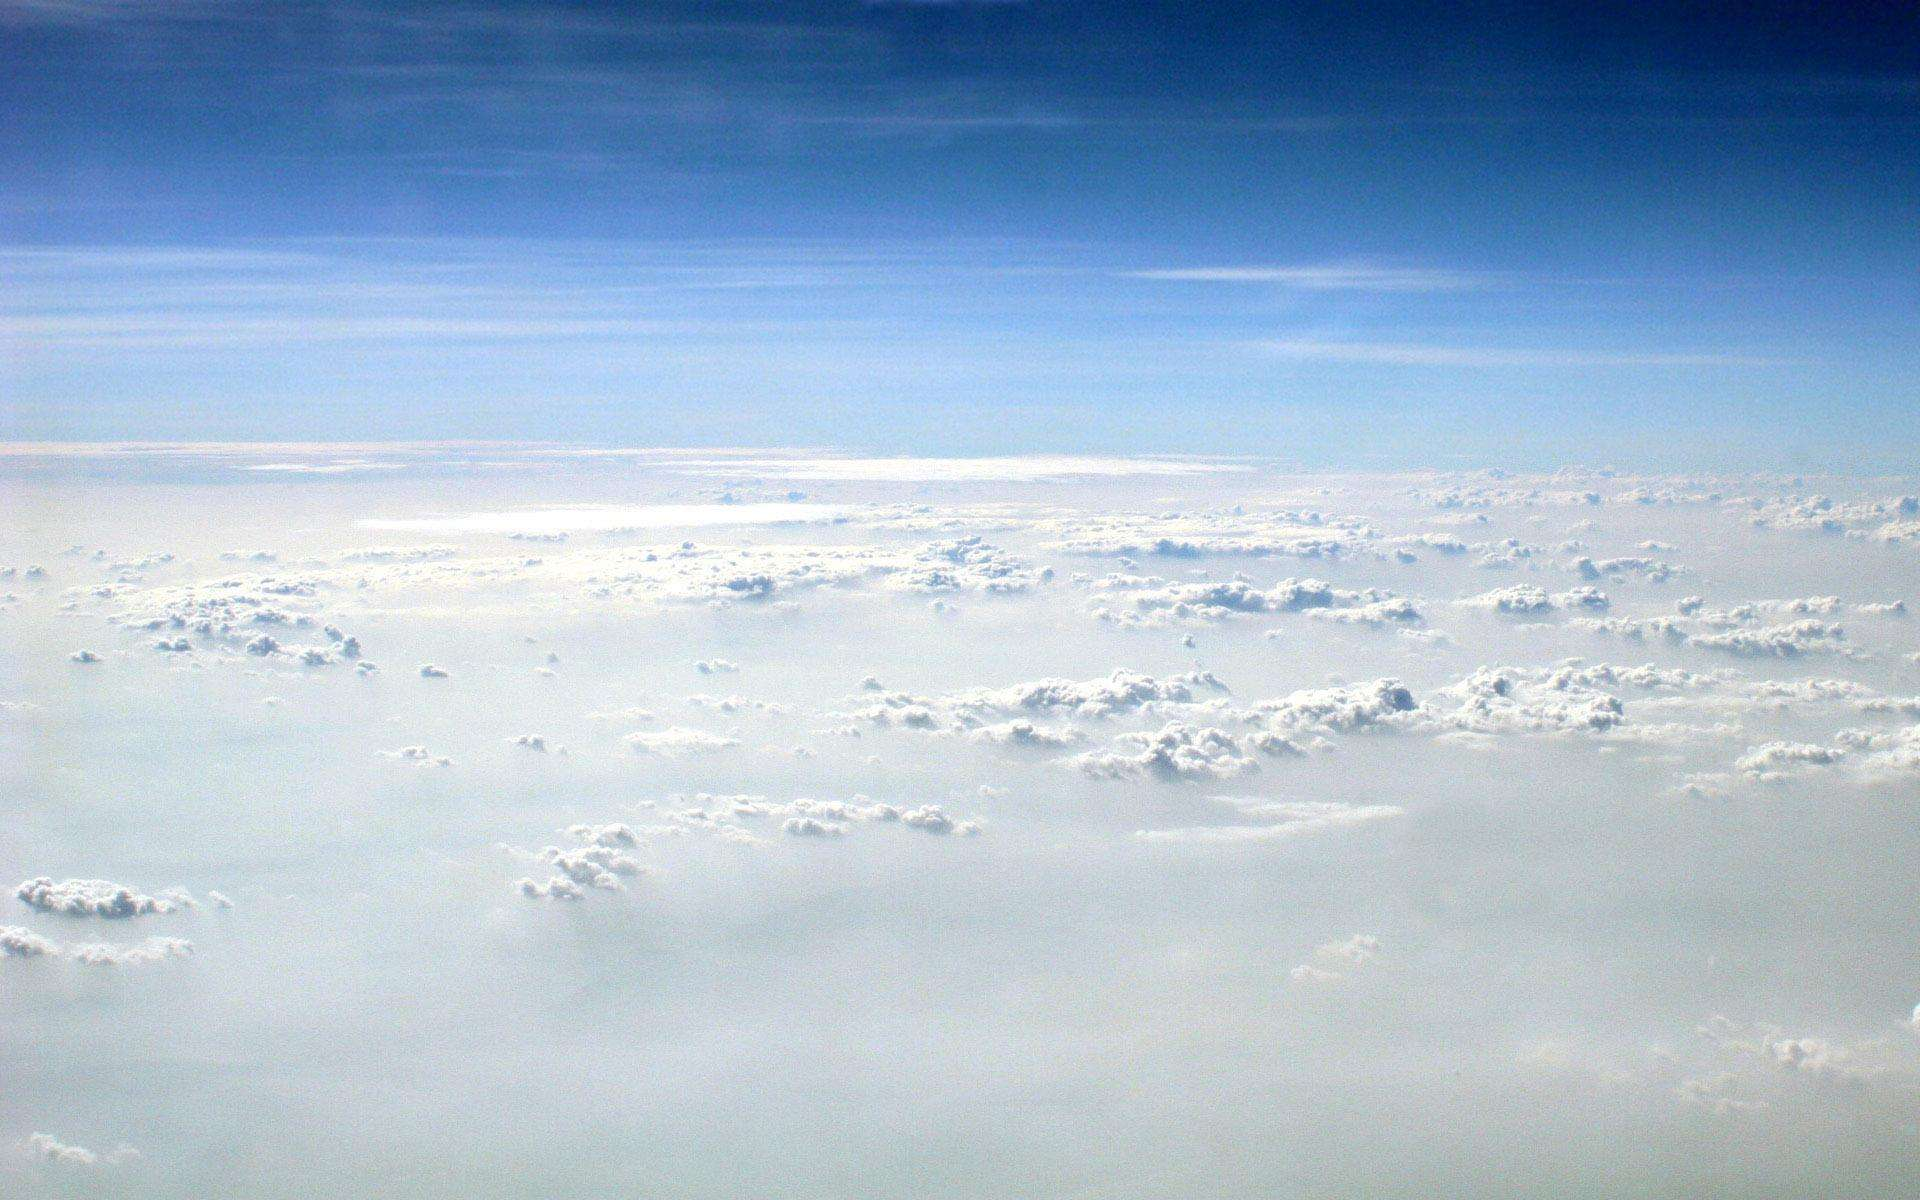 Clouds Wallpaper 041